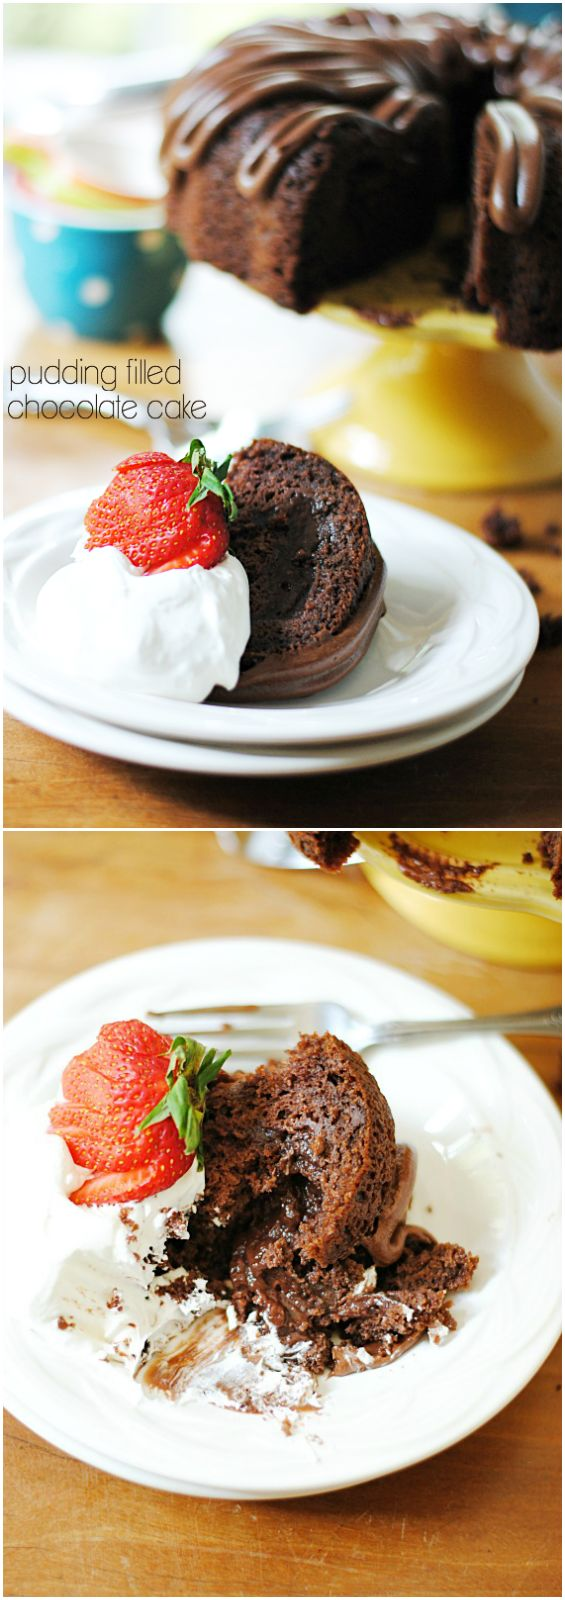 pudding filled cakes